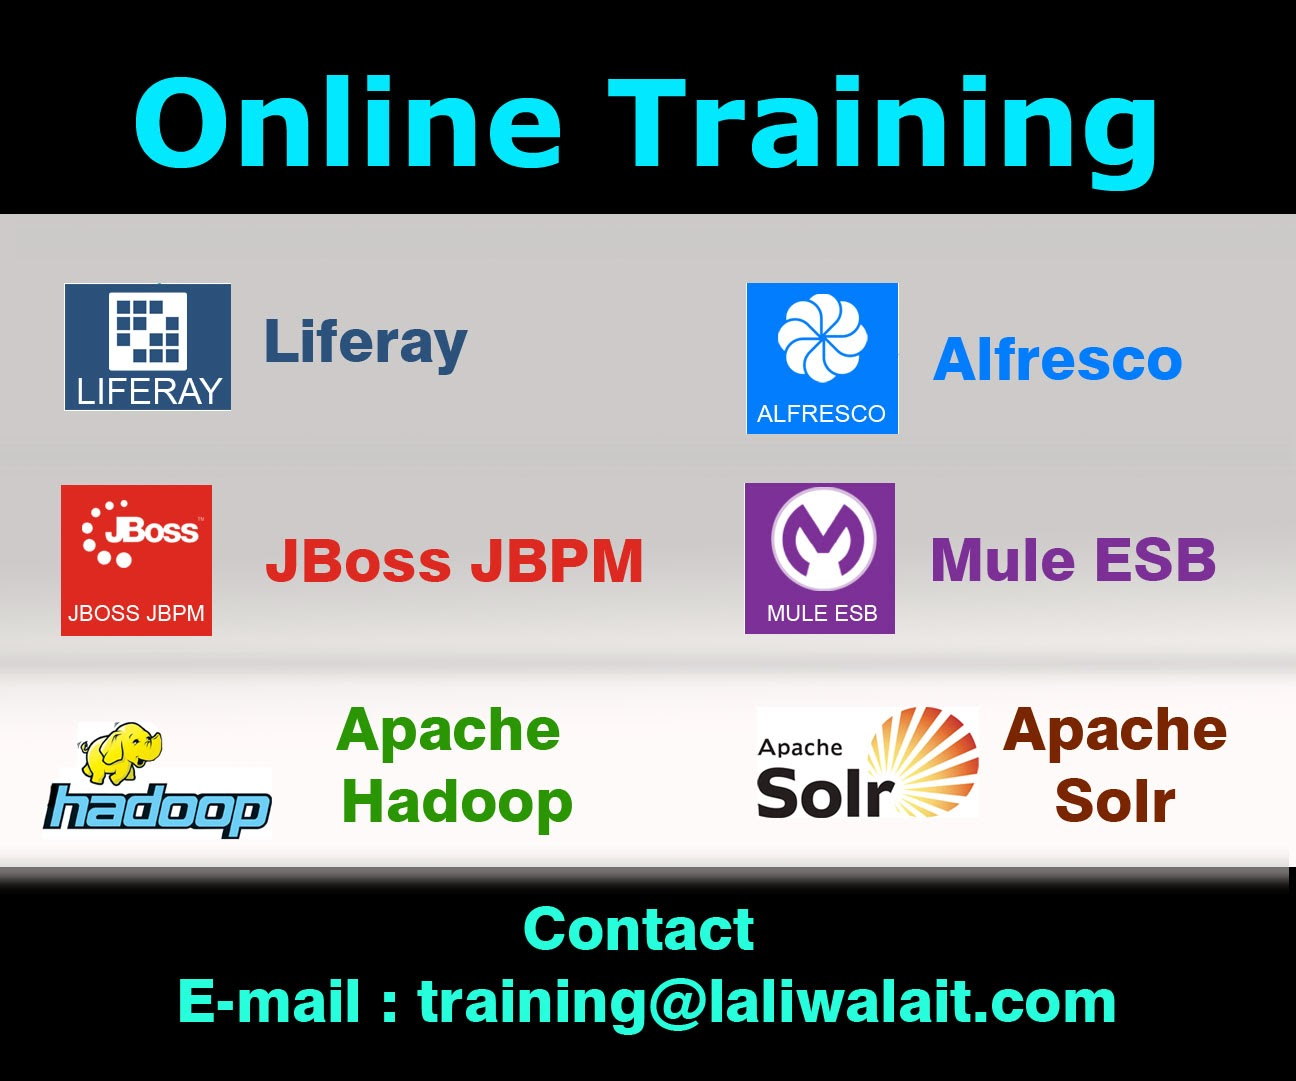 liferay Training, Alfresco Training, Apache Camel Training